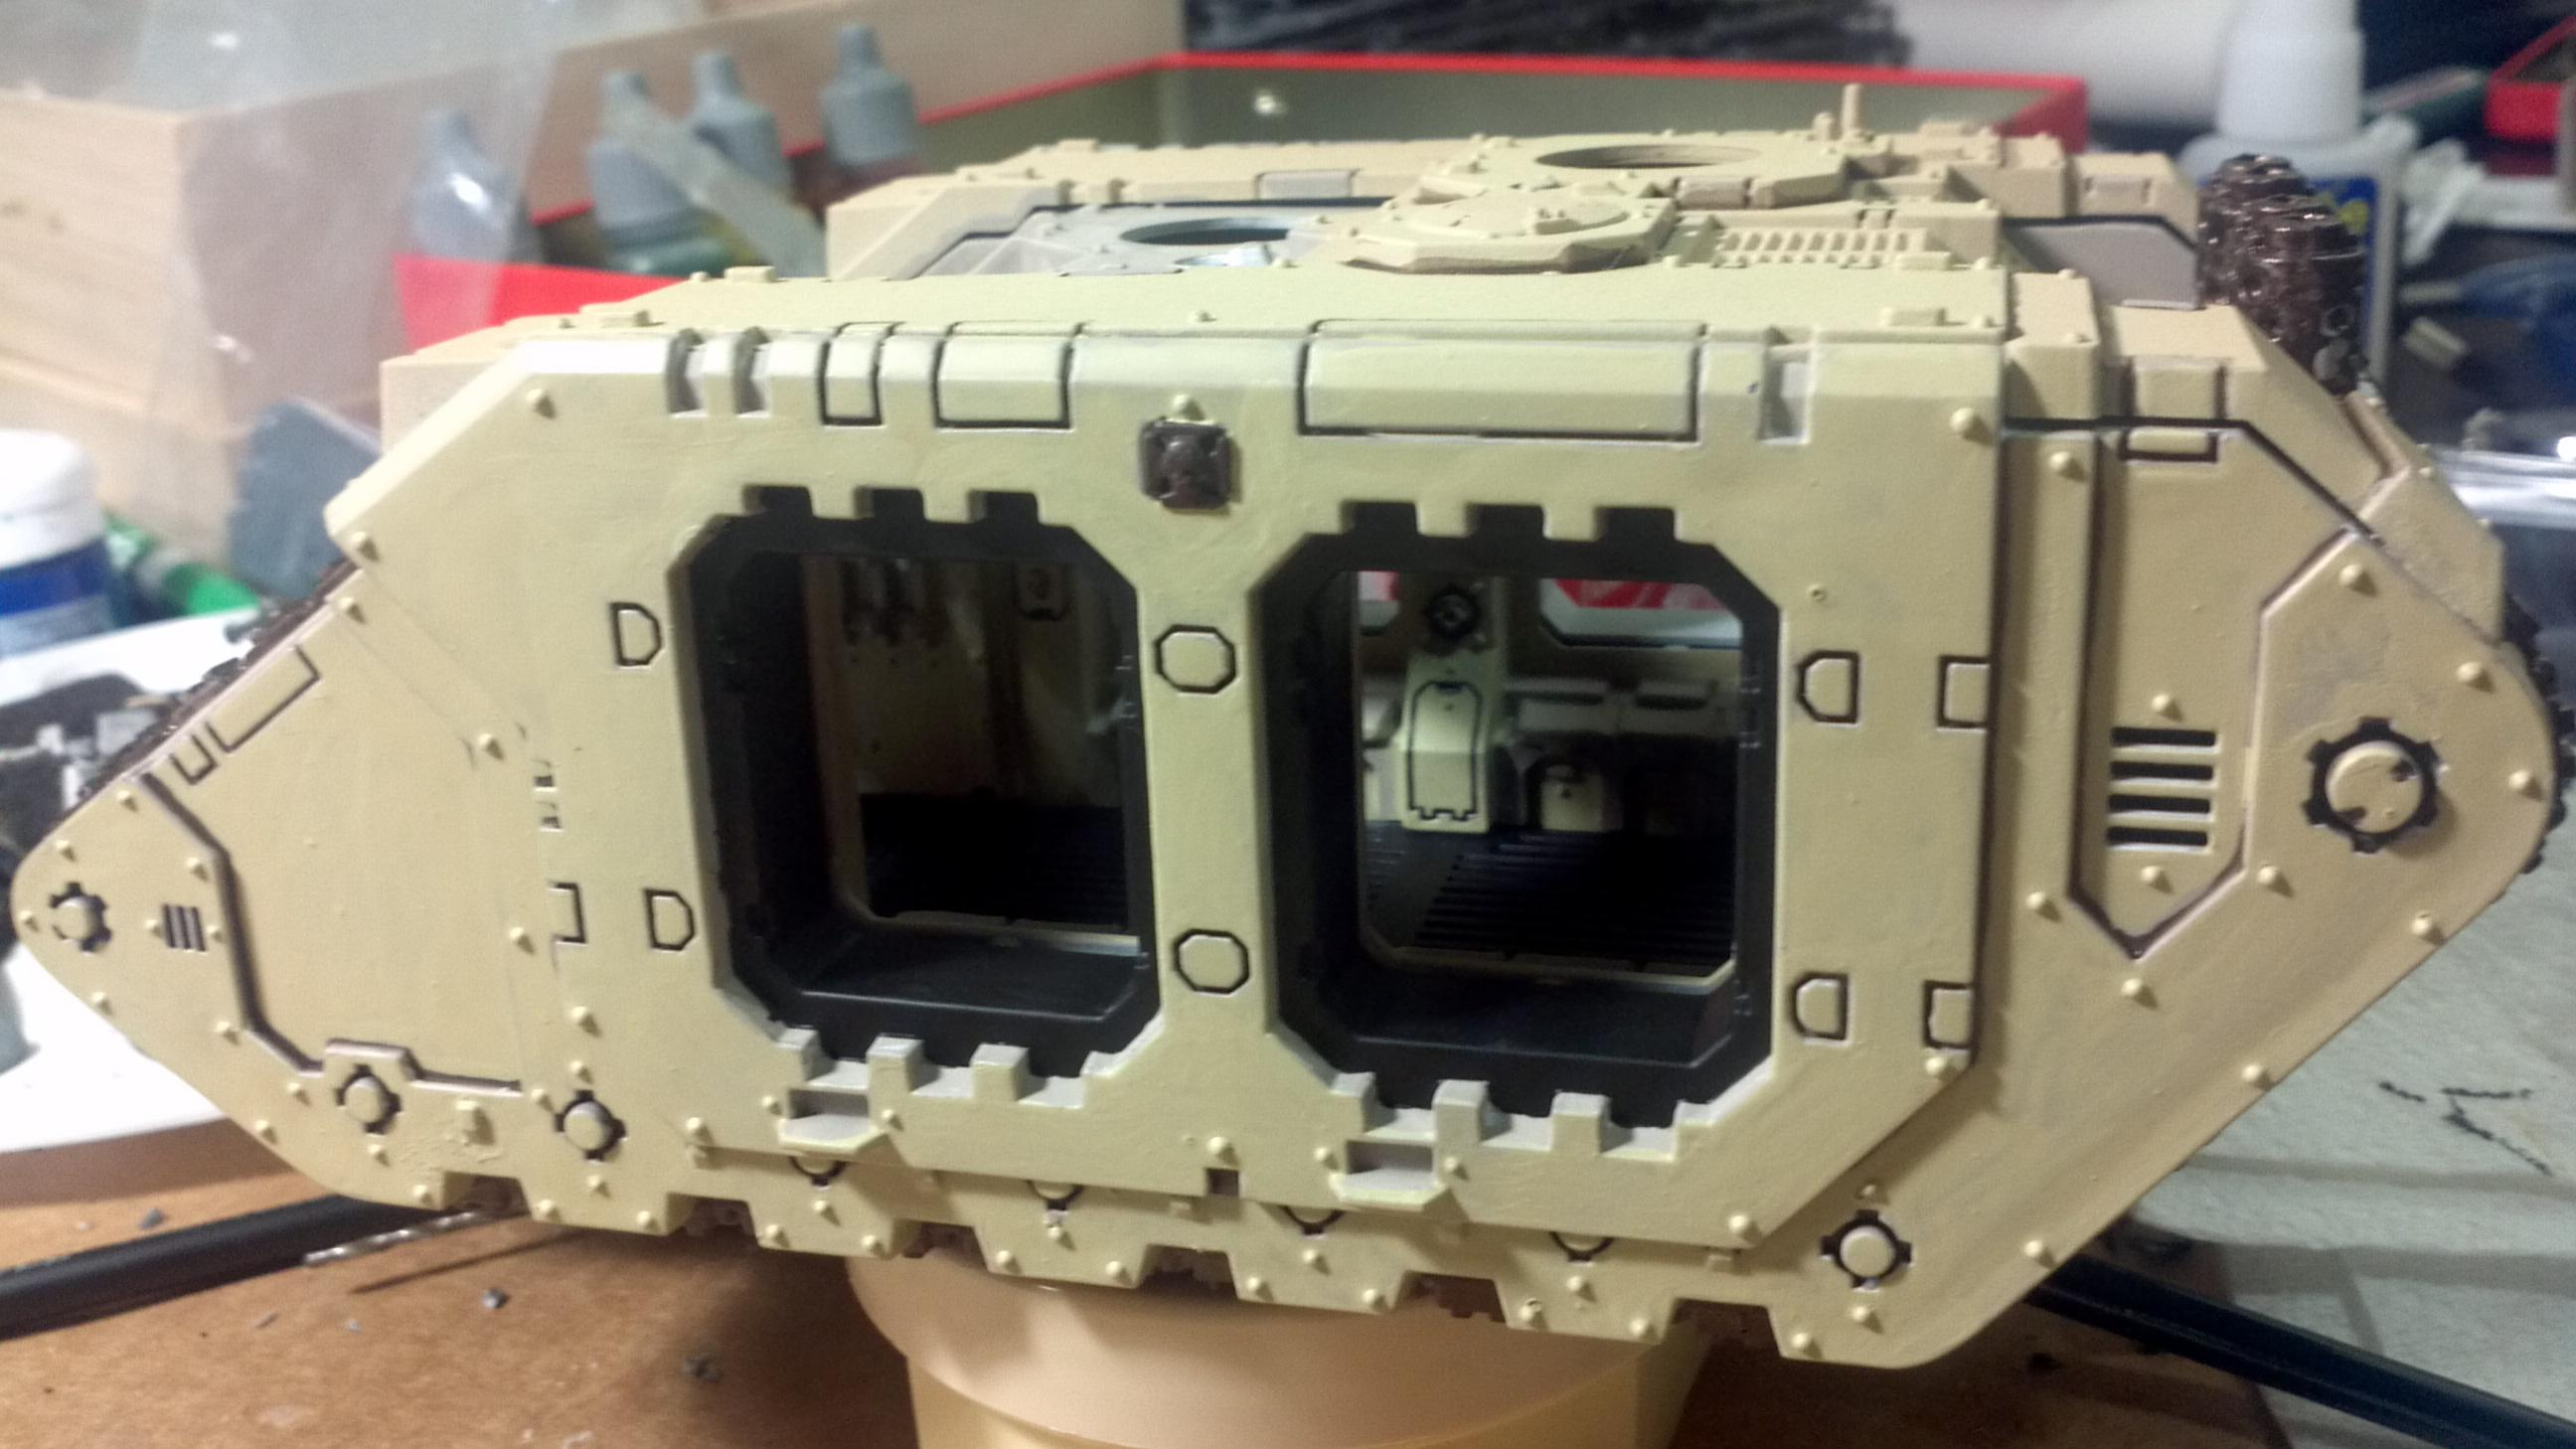 Half of the land raider is done with the background color